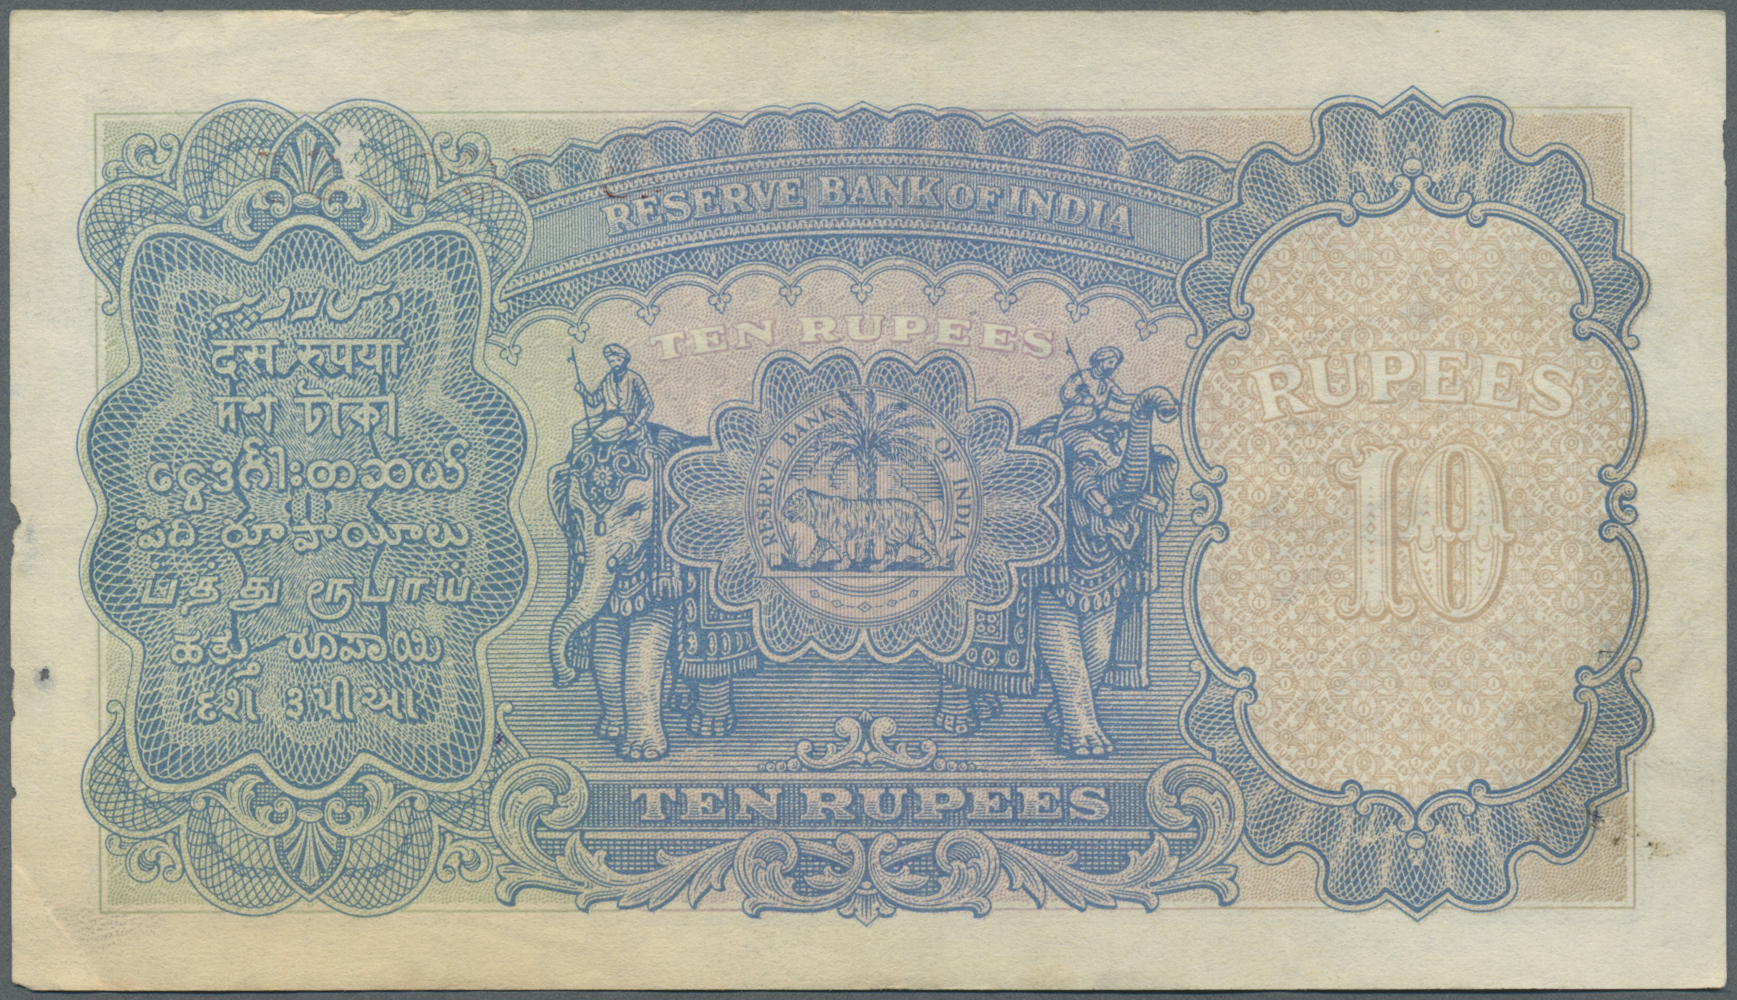 Lot 828 - India / Indien | Banknoten  -  Auktionshaus Christoph Gärtner GmbH & Co. KG Banknotes Worldwide Auction #39 Day 1